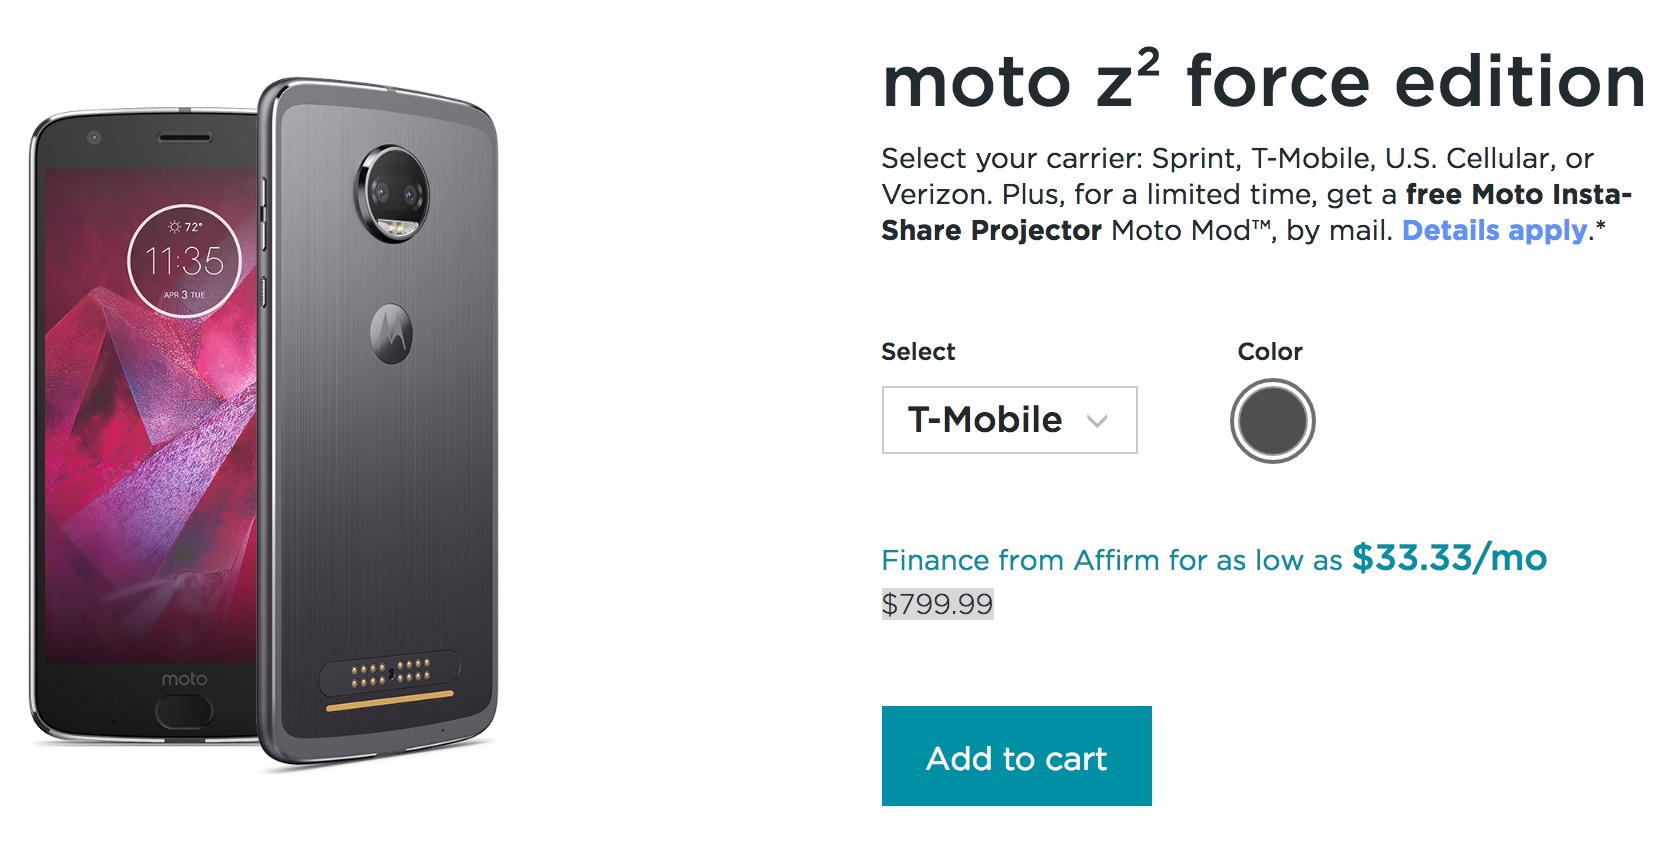 Moto Z2 Force Release Date Breakdown